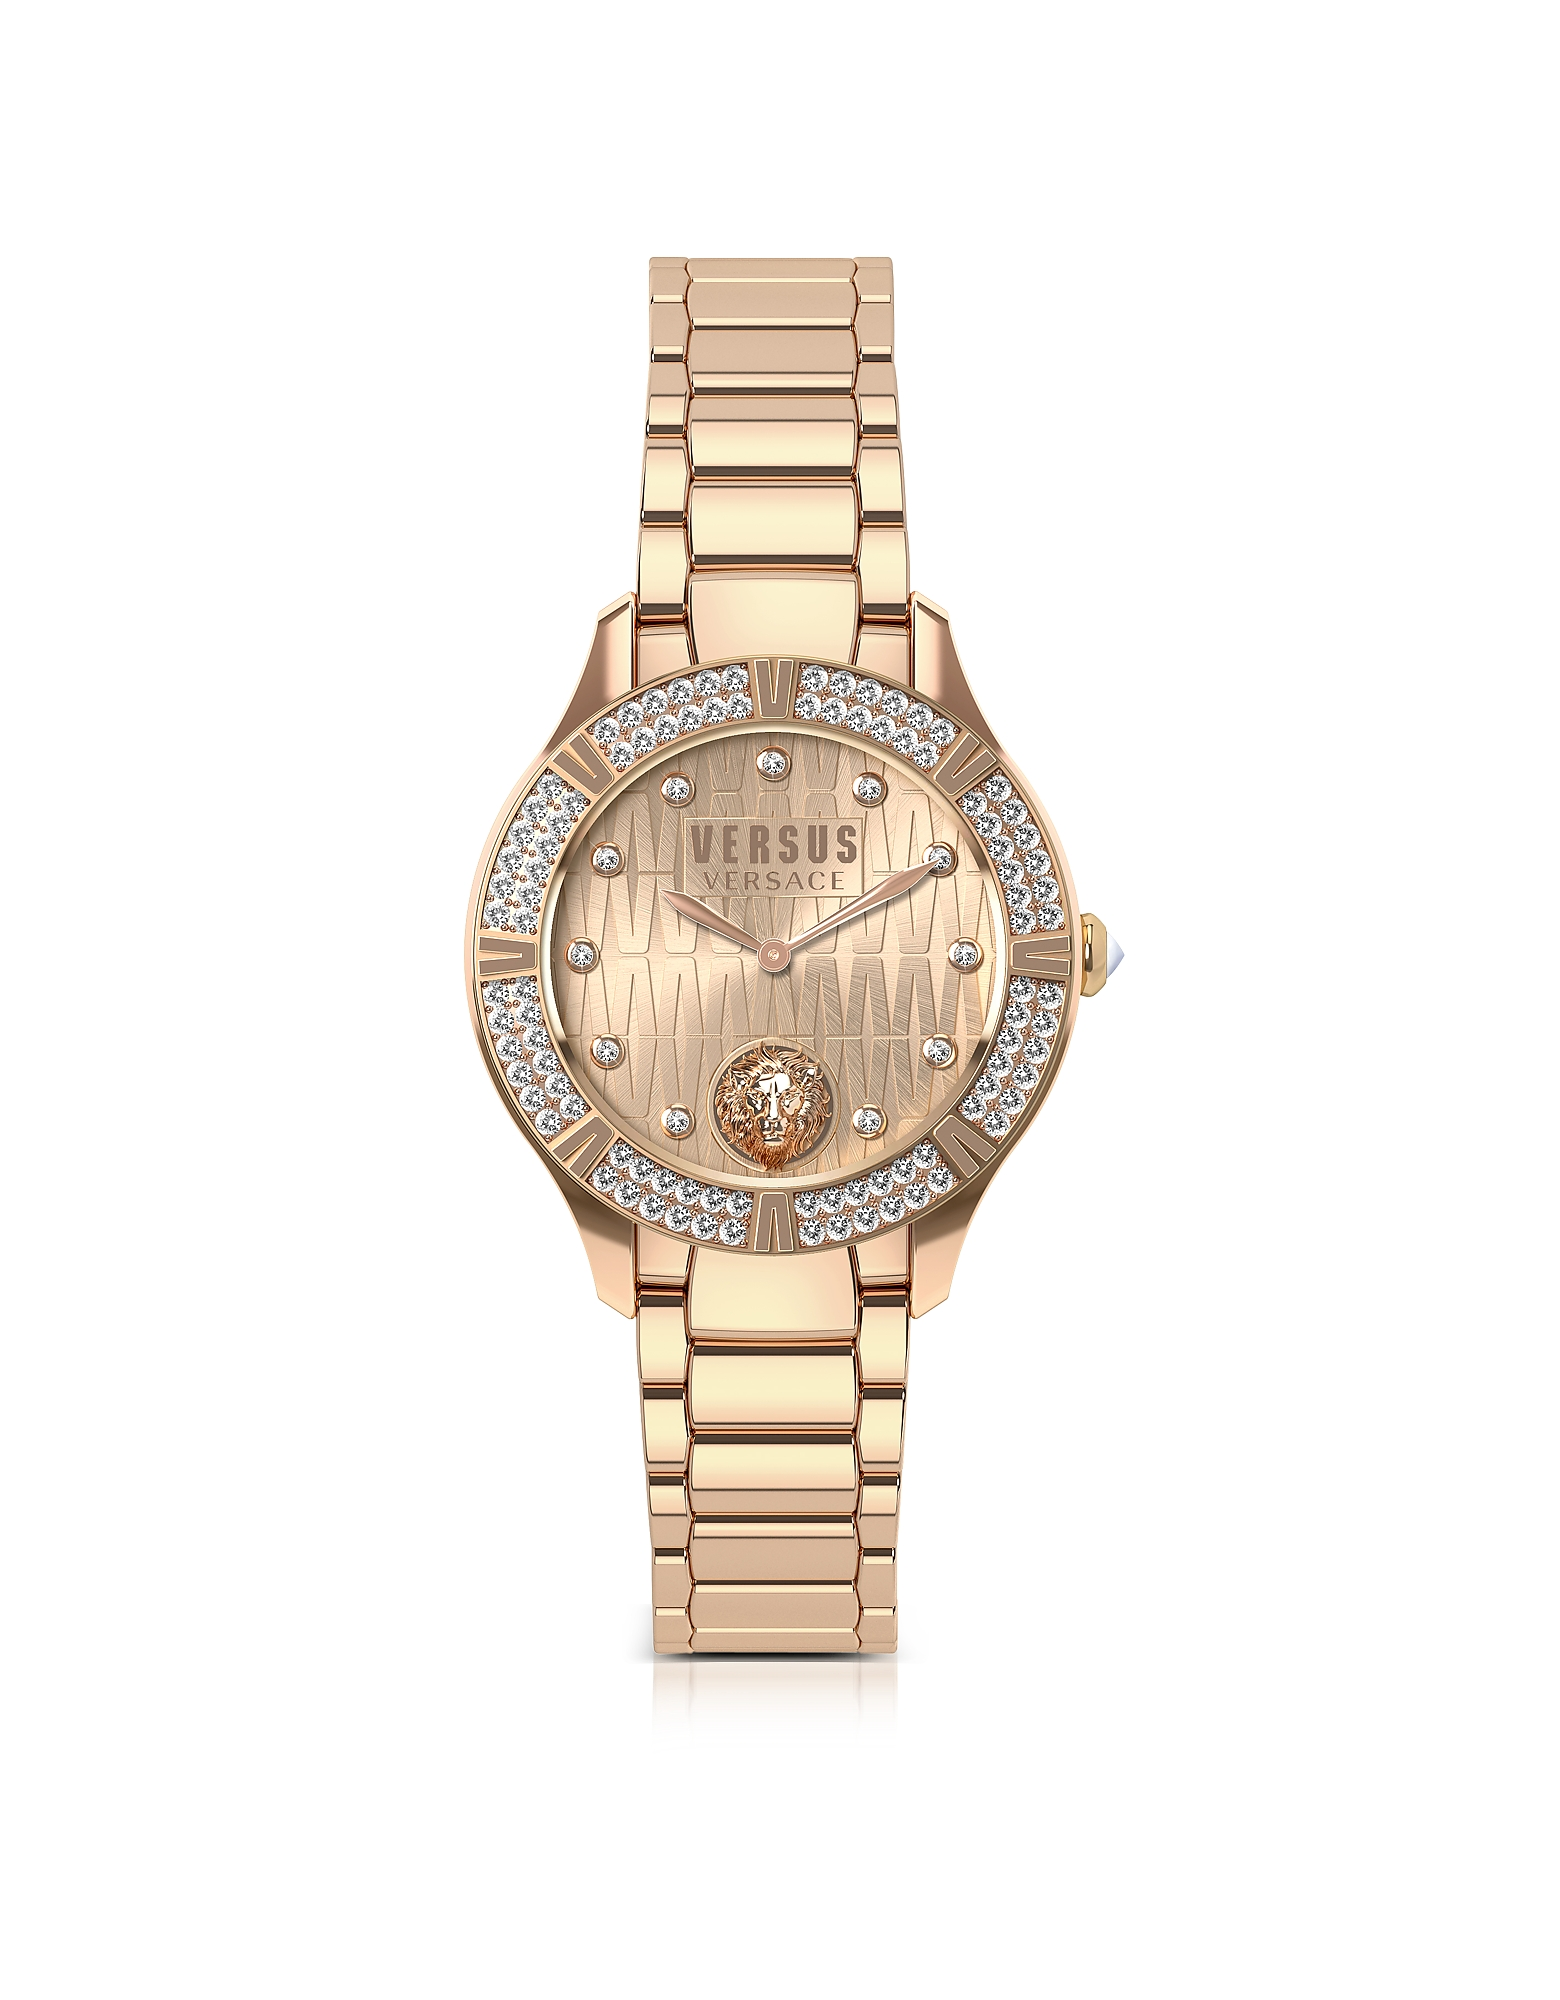 Canton Road Rose Gold Tone Stainless Steel Women's Bracelet Watch w/Crystals